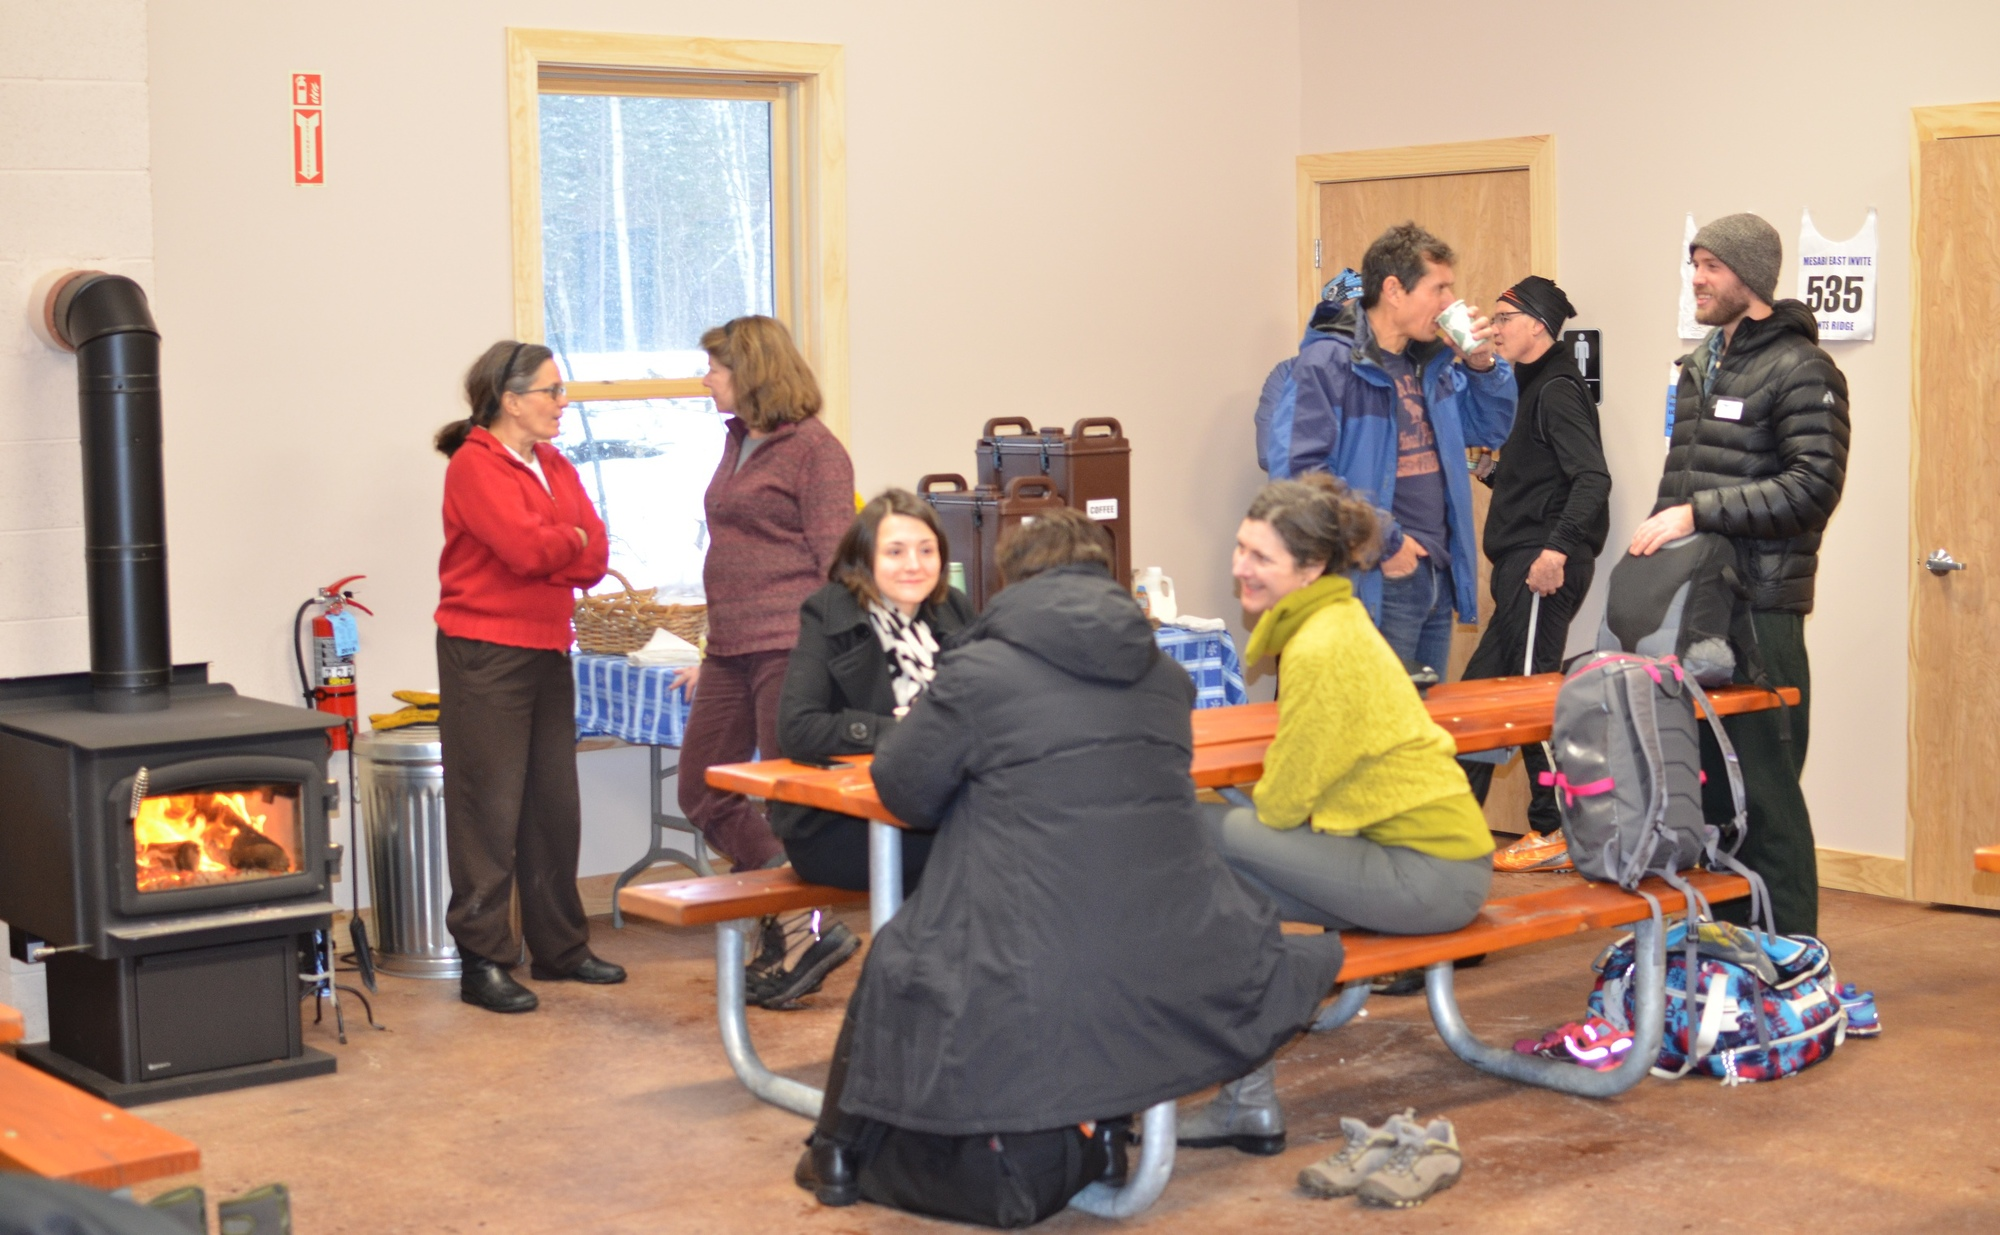 Visitors to the Blueberry Ridge Ski Pathway in Marquette County warm-up inside the facility after a ribbon-cutting ceremony. Outside, the temperature